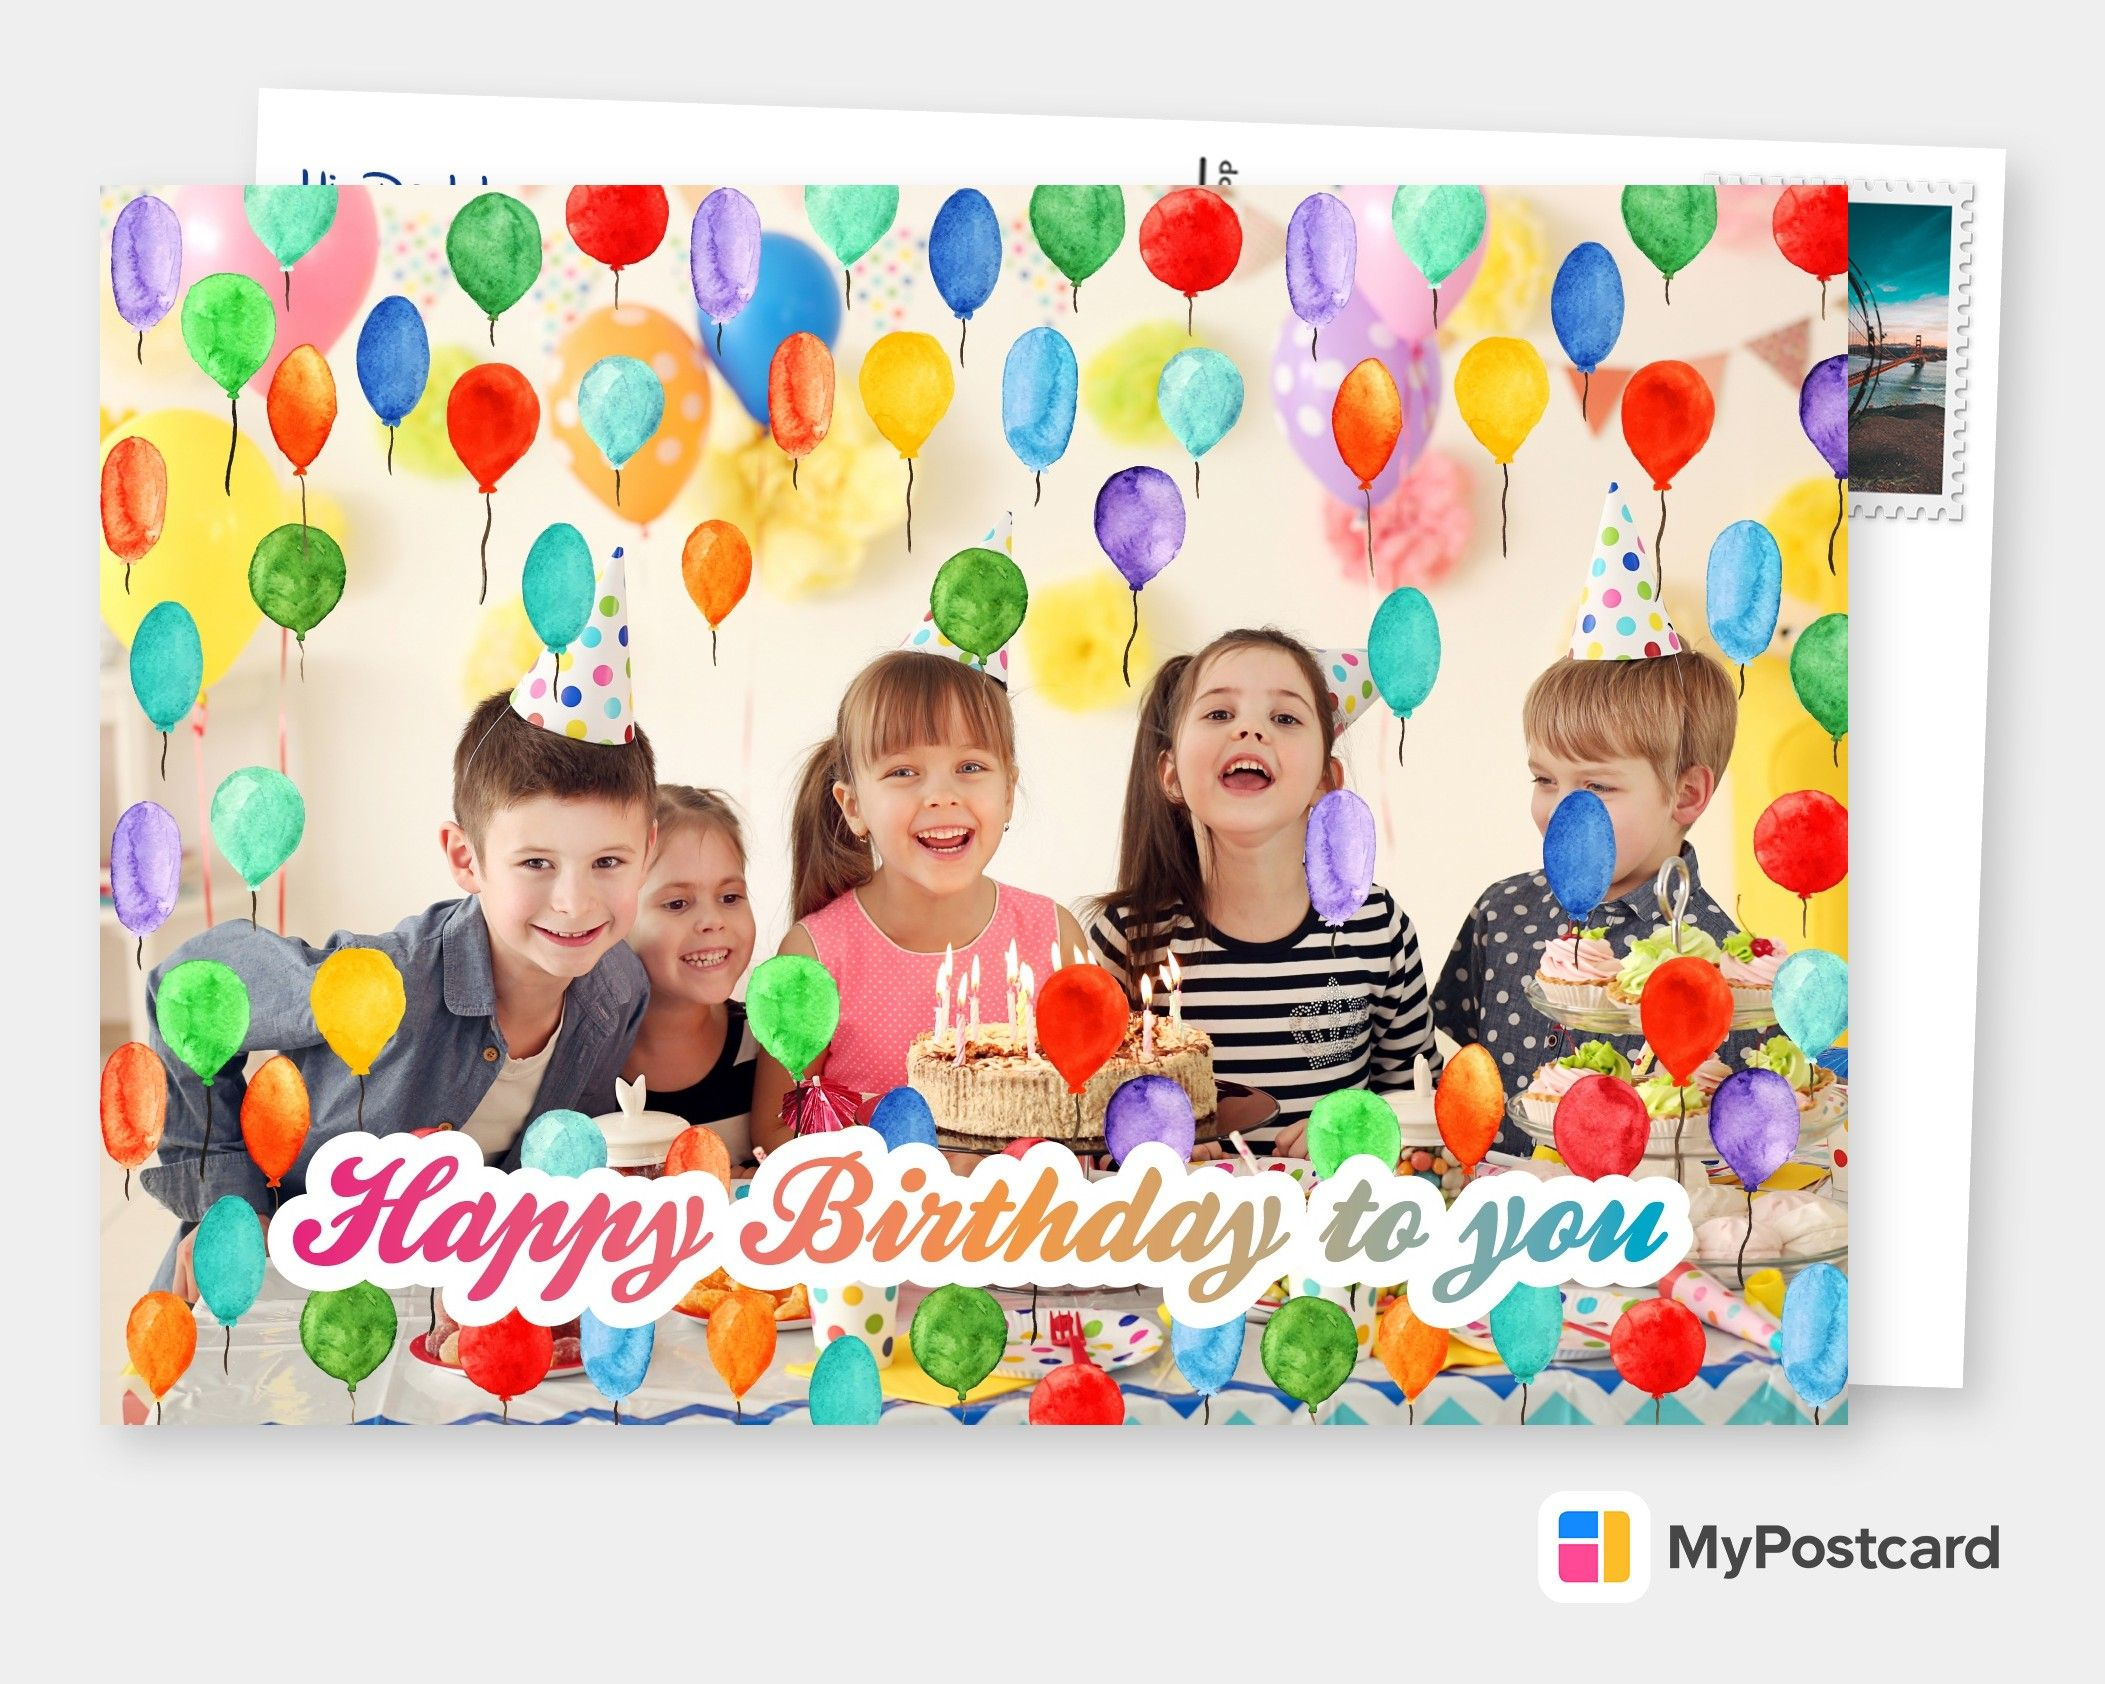 Create Your Own Photo Birthday Cards Online Free Printable Templates Use Your Own Photo Printed Mailed For You International Make Your Own Photo Birth Birthday Card